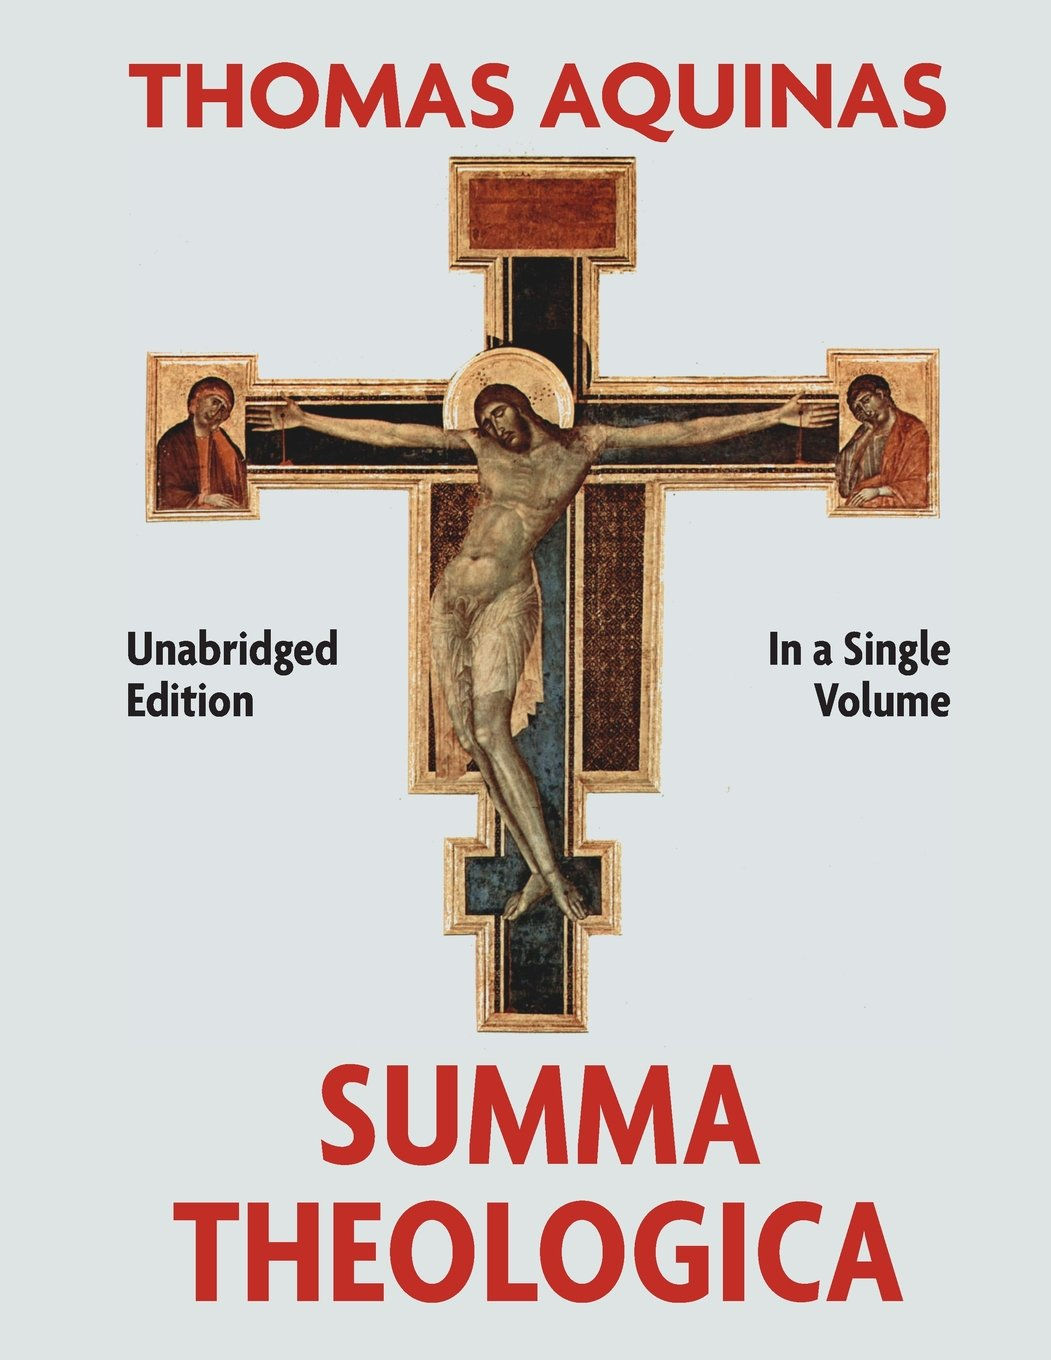 Summa Theologica Complete in a Single Volume by Coyote Canyon Press